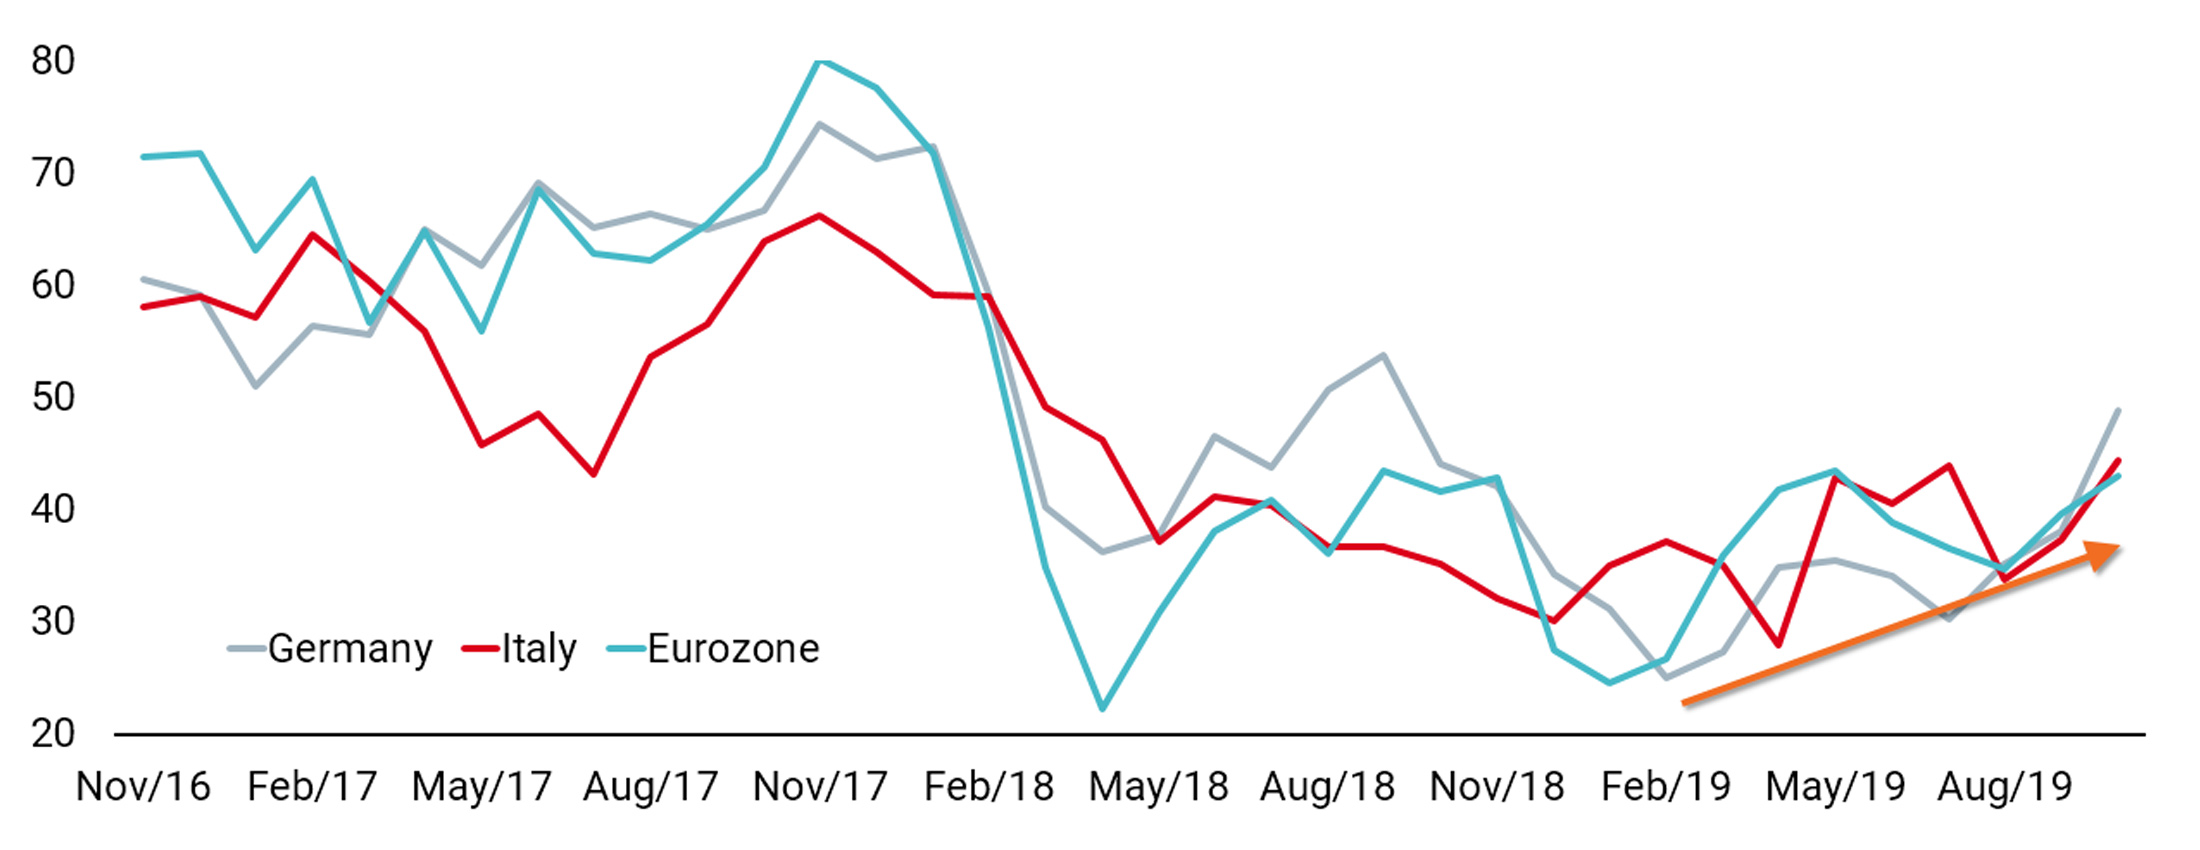 20191106 COTD Improving Eurozone Growth website